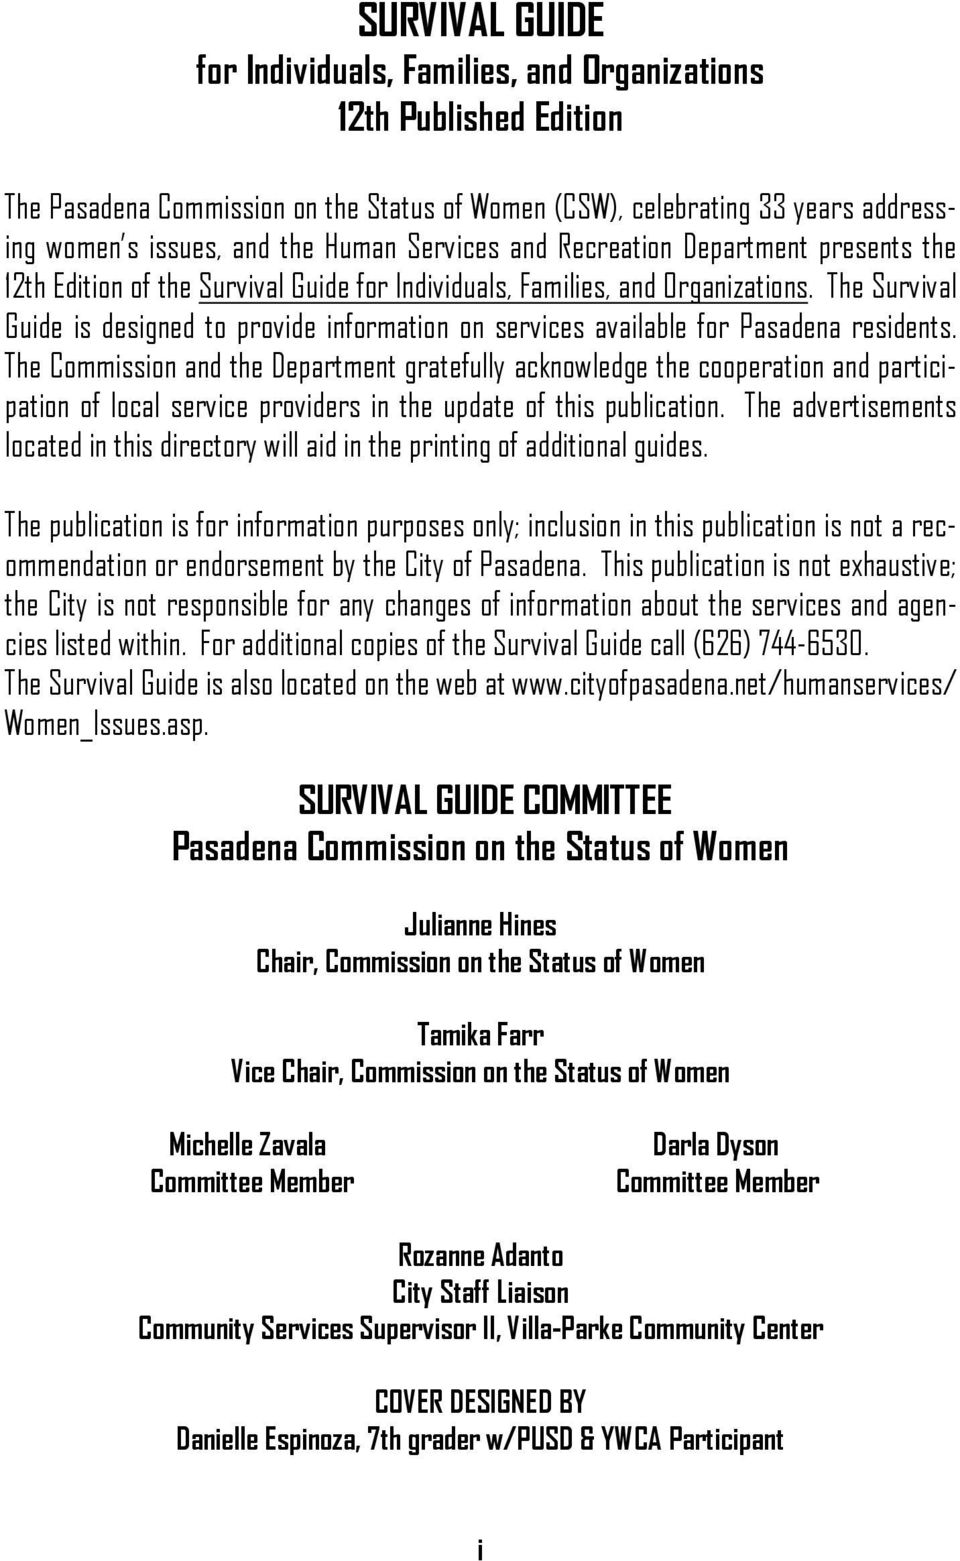 The Survival Guide is designed to provide information on services available for Pasadena residents.